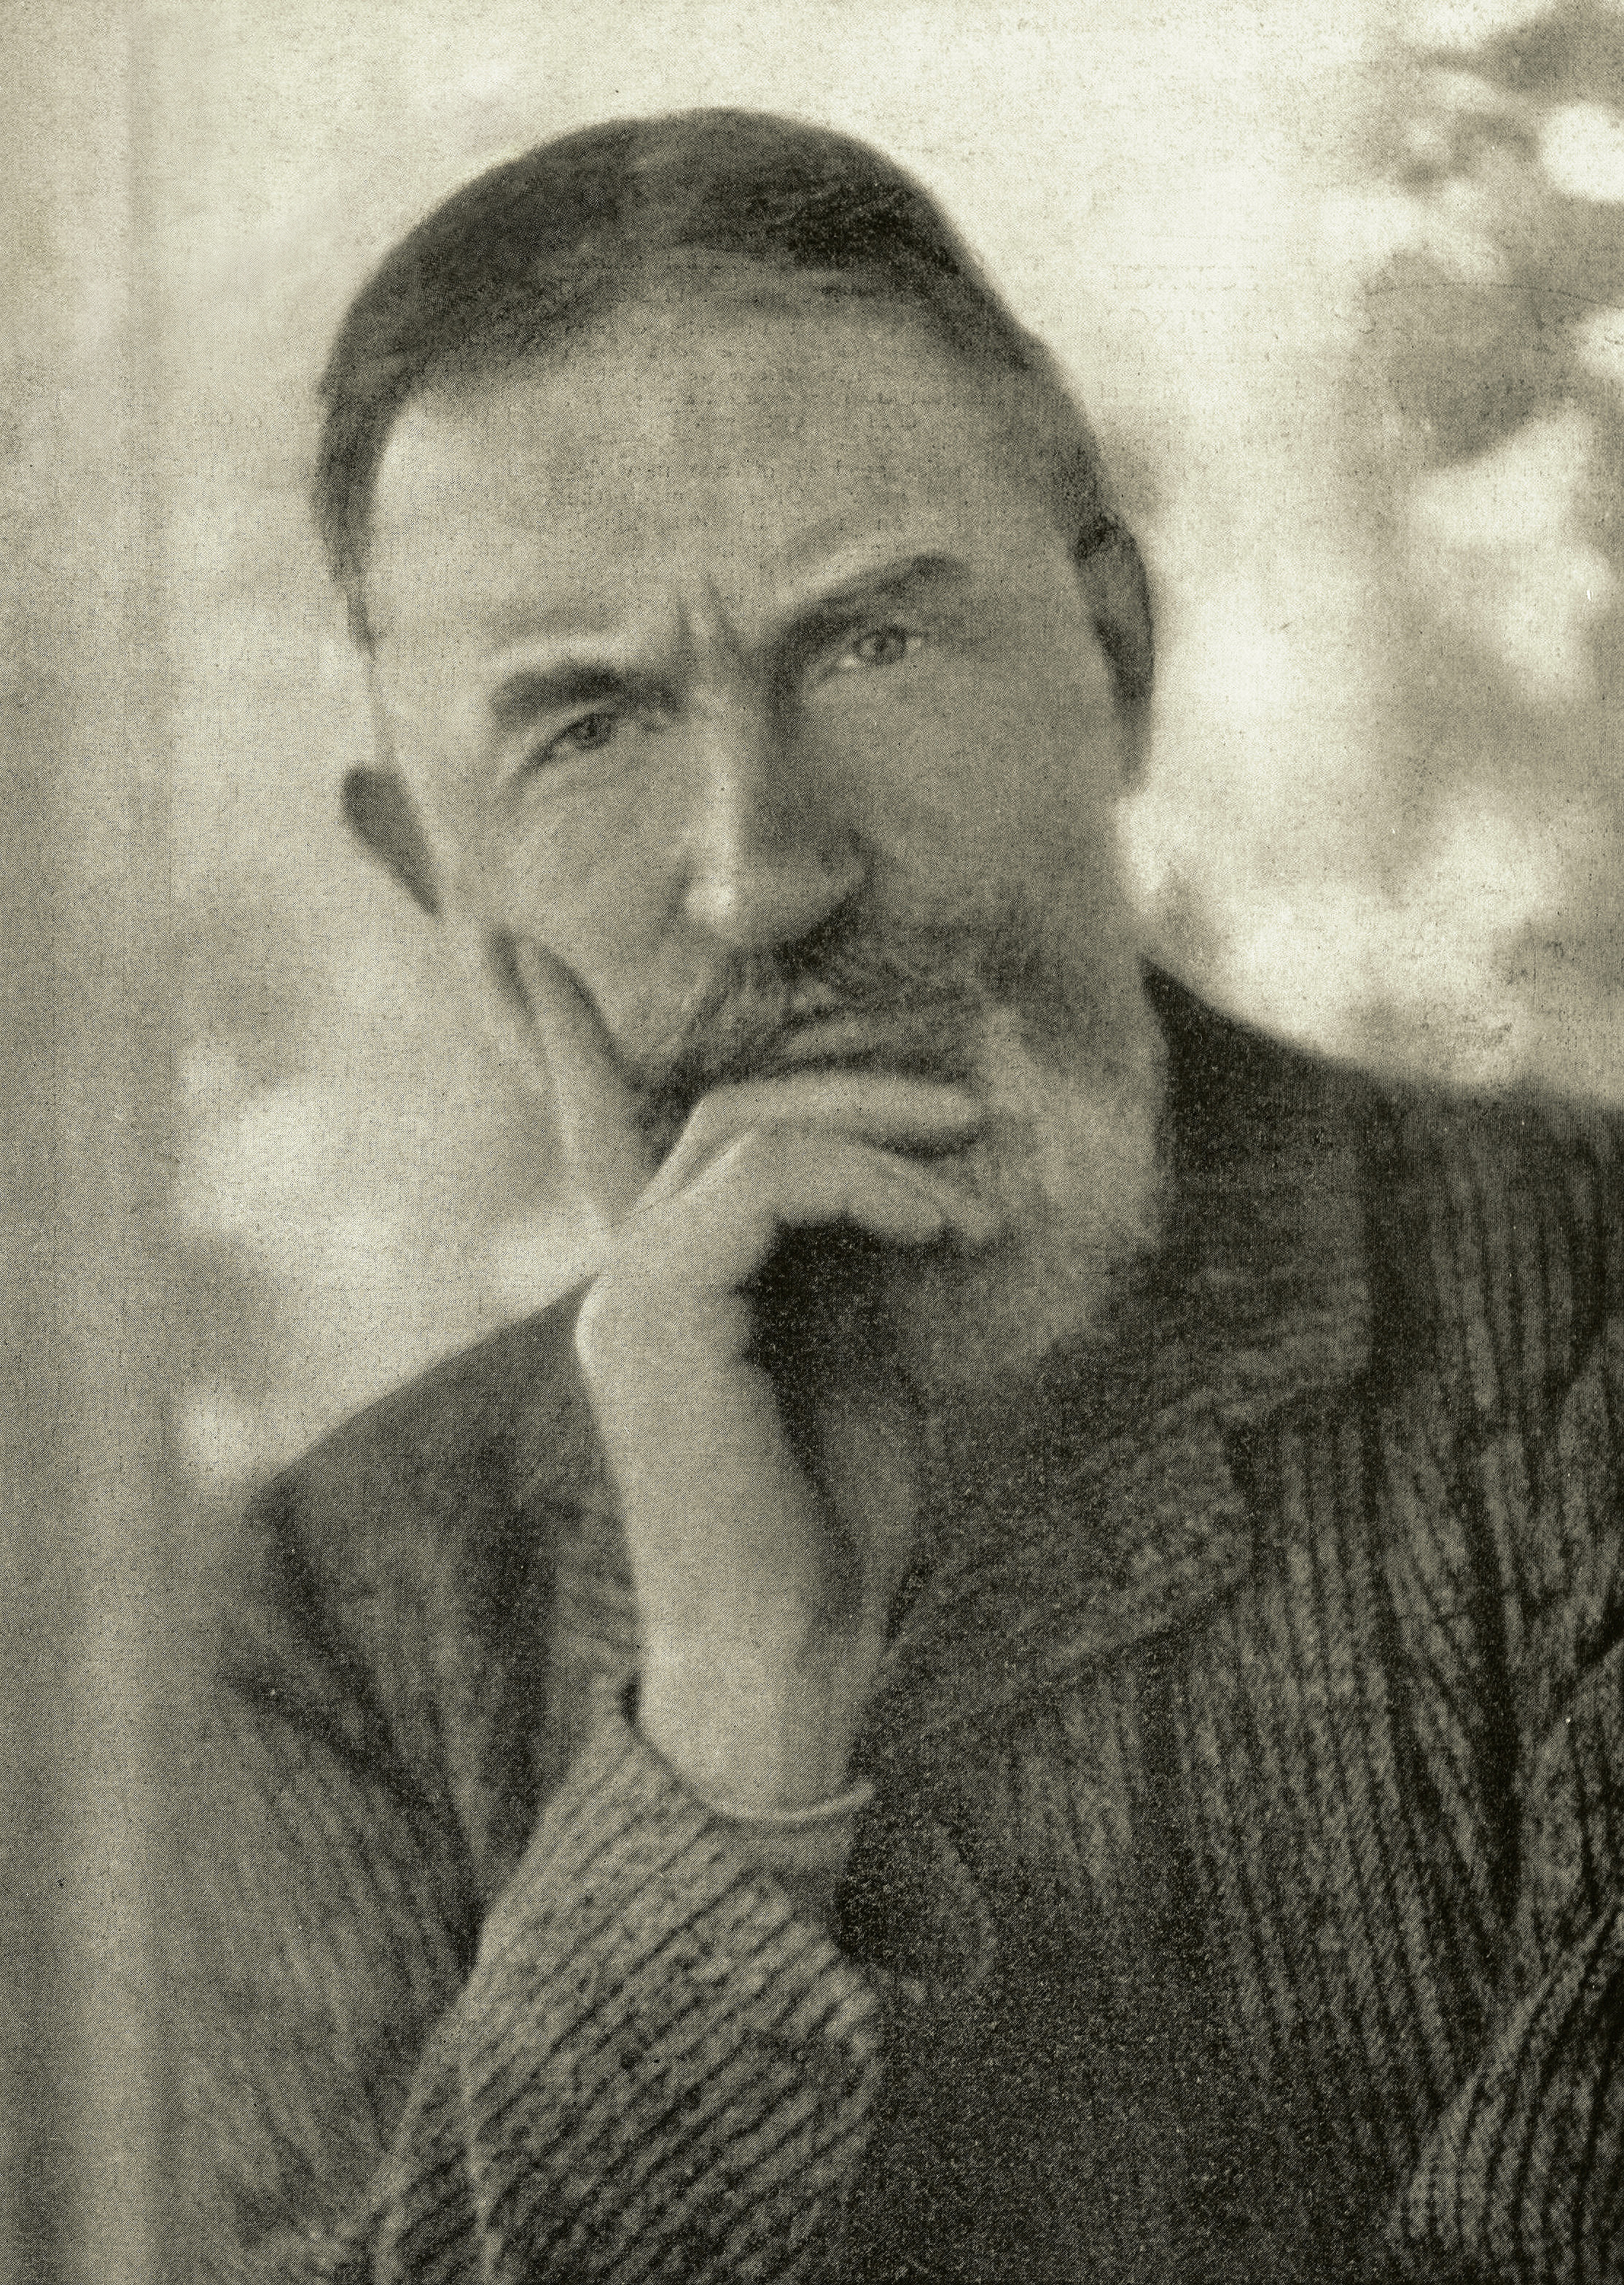 Shaw In 1911 By Alvin Langdon Coburn